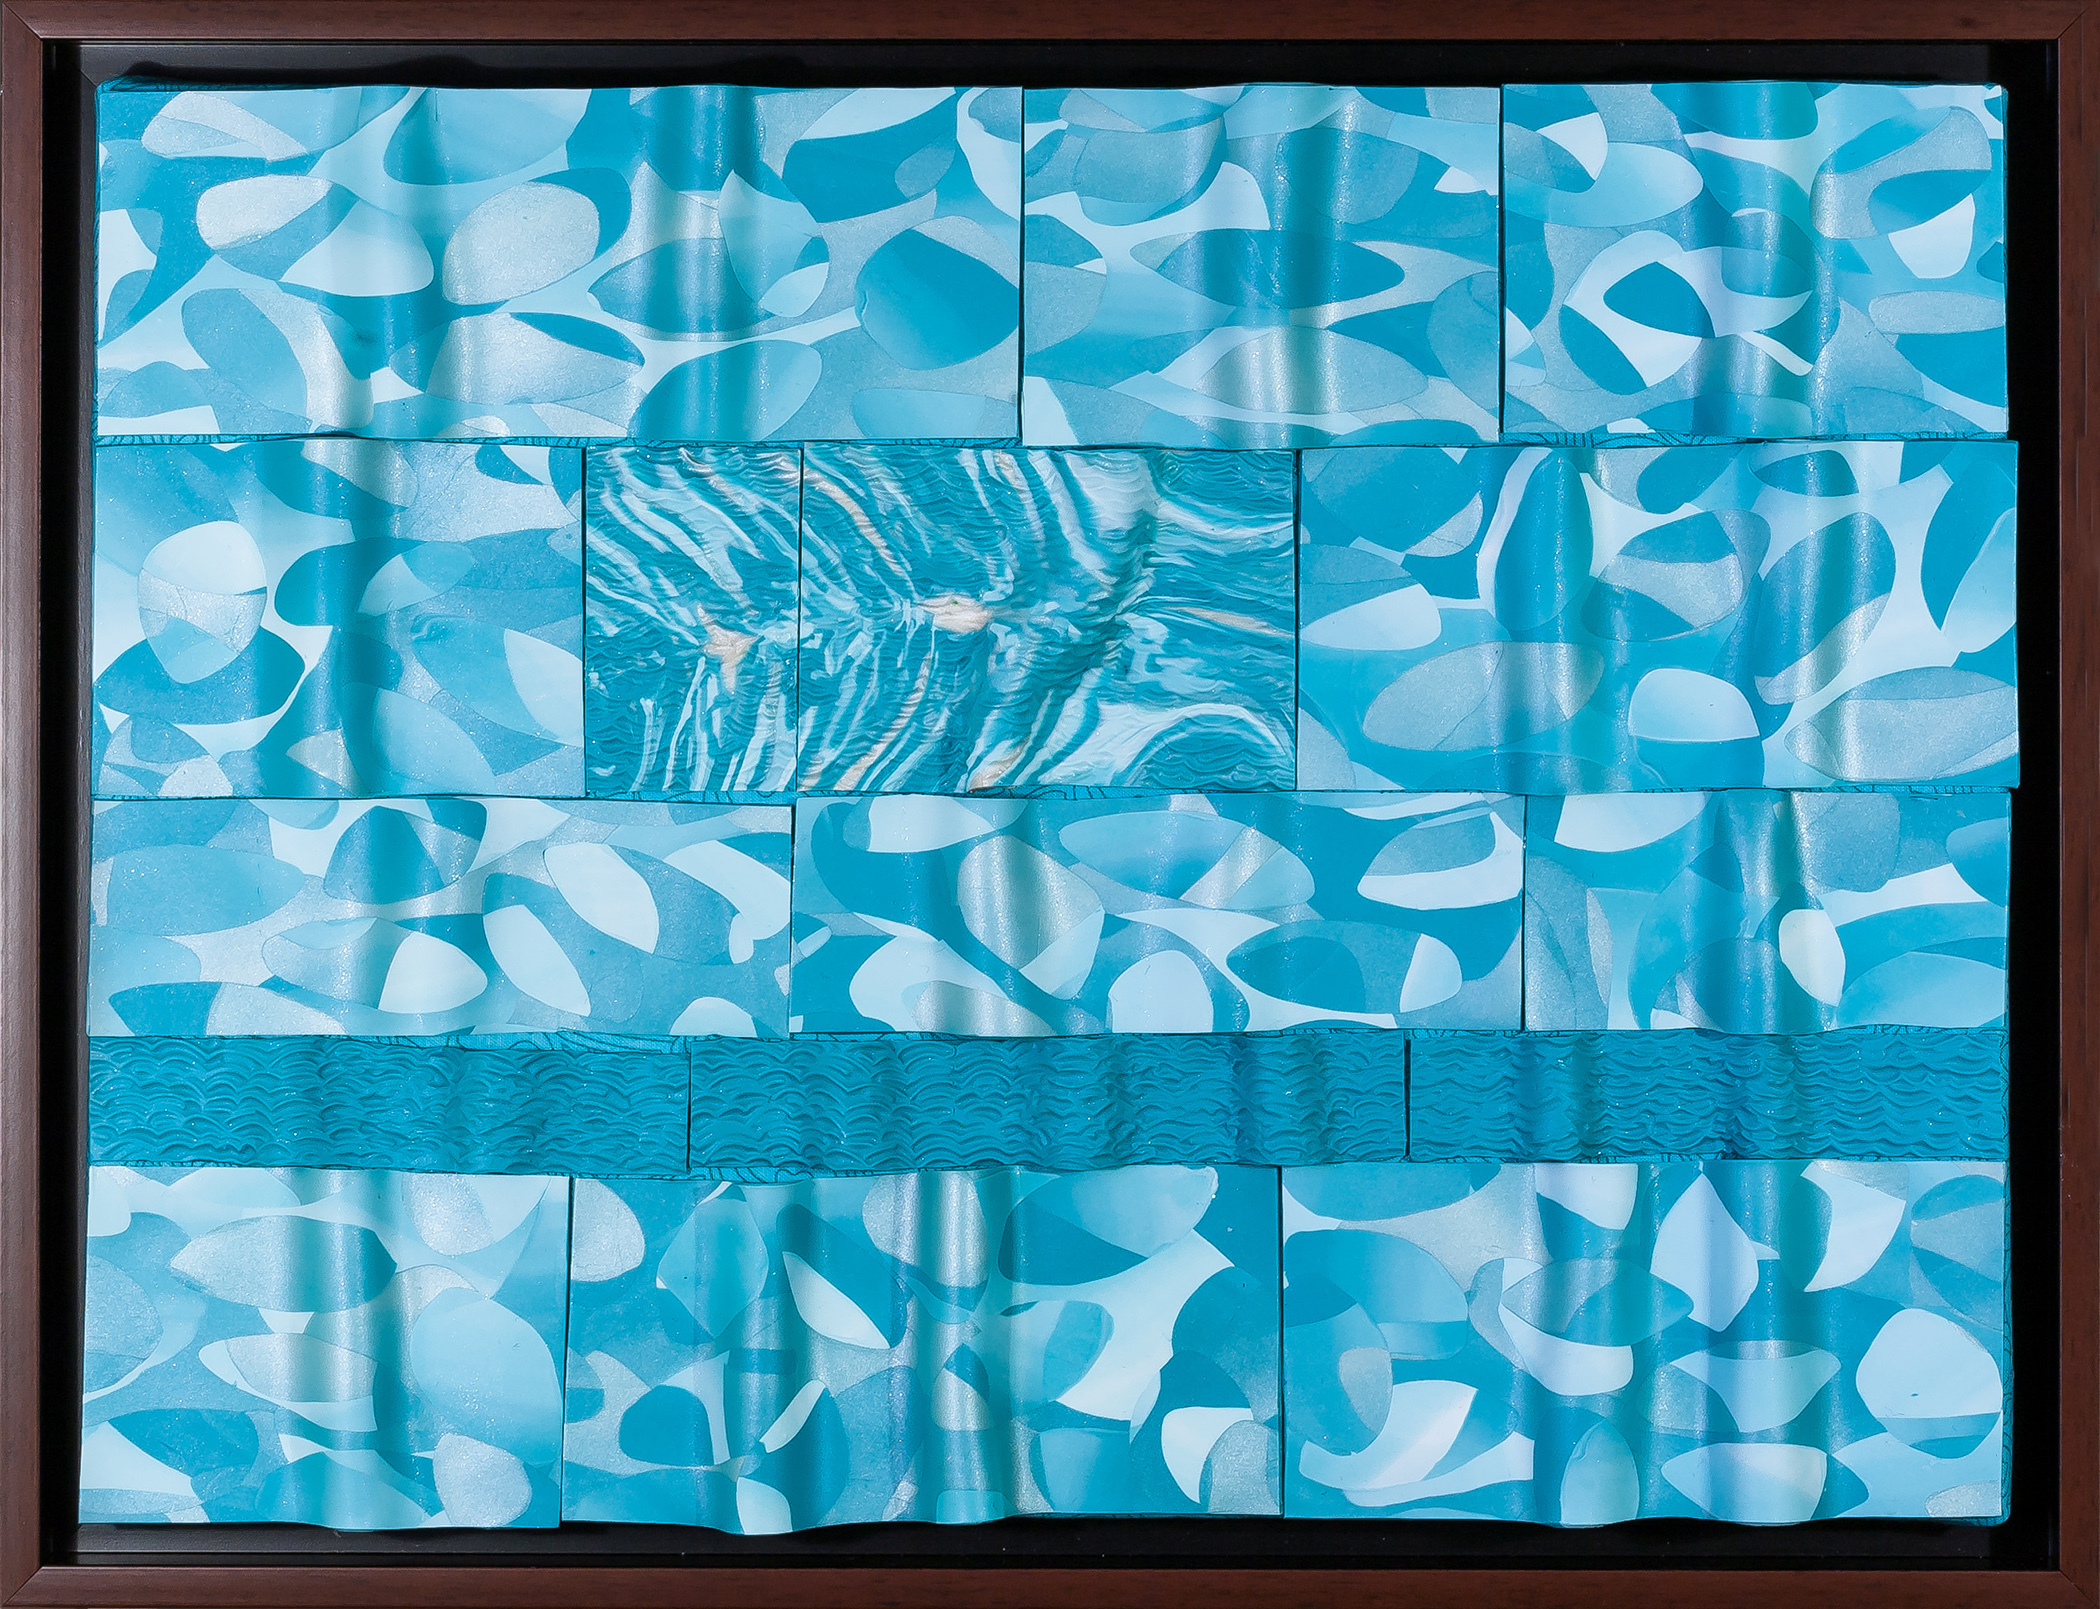 Foundry Gallery-Fran Abrams-Tropical Lagoon-12x16-Polymer clay not painted-2015-$875.jpg